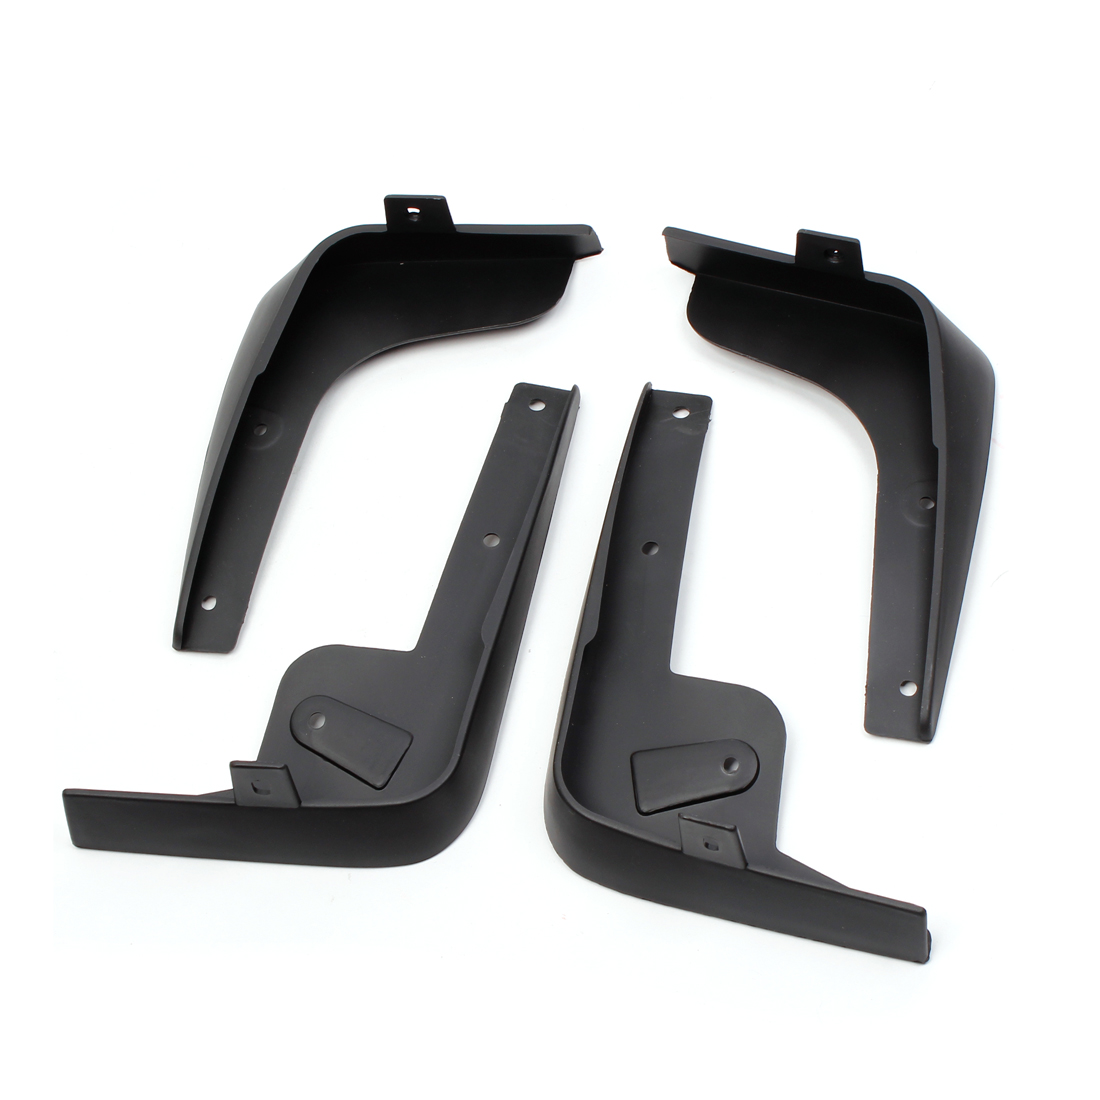 4 in 1 Car Vehicle Splash Guards Front Rear Mud Flaps Set for Nissan Tiida